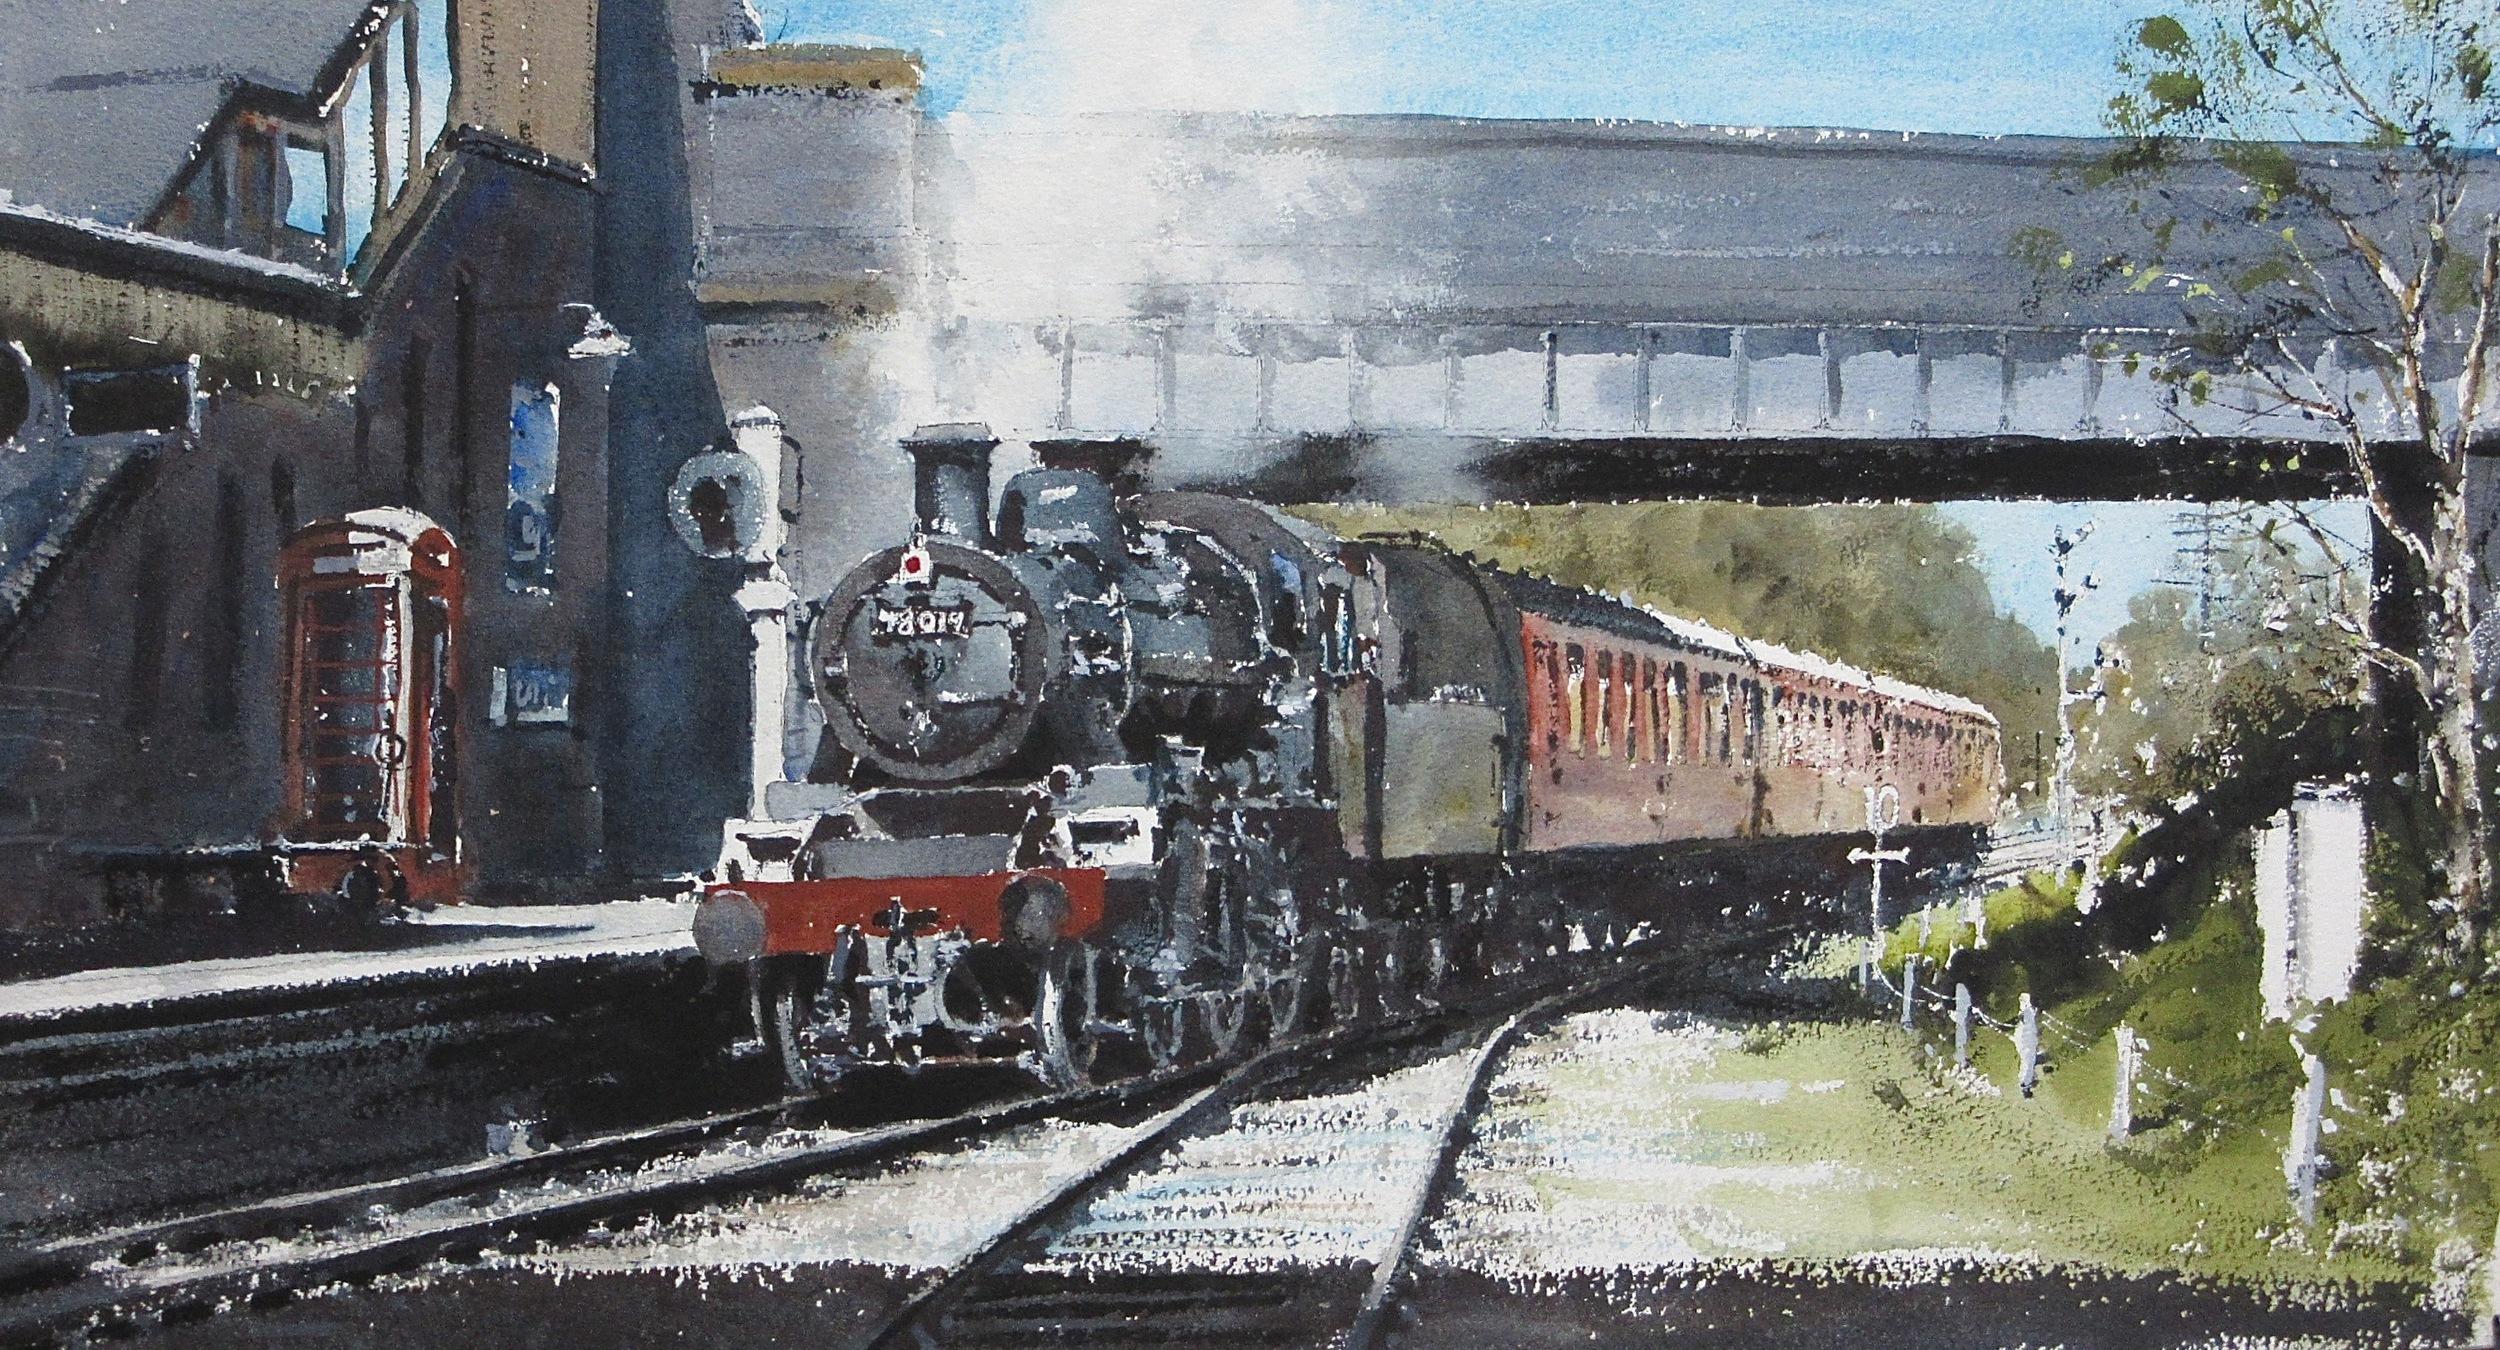 BR Standard Class 2-6-0 no. 78019 on the Down Line at Quorn: 13 x 24 in: watercolour: £1150